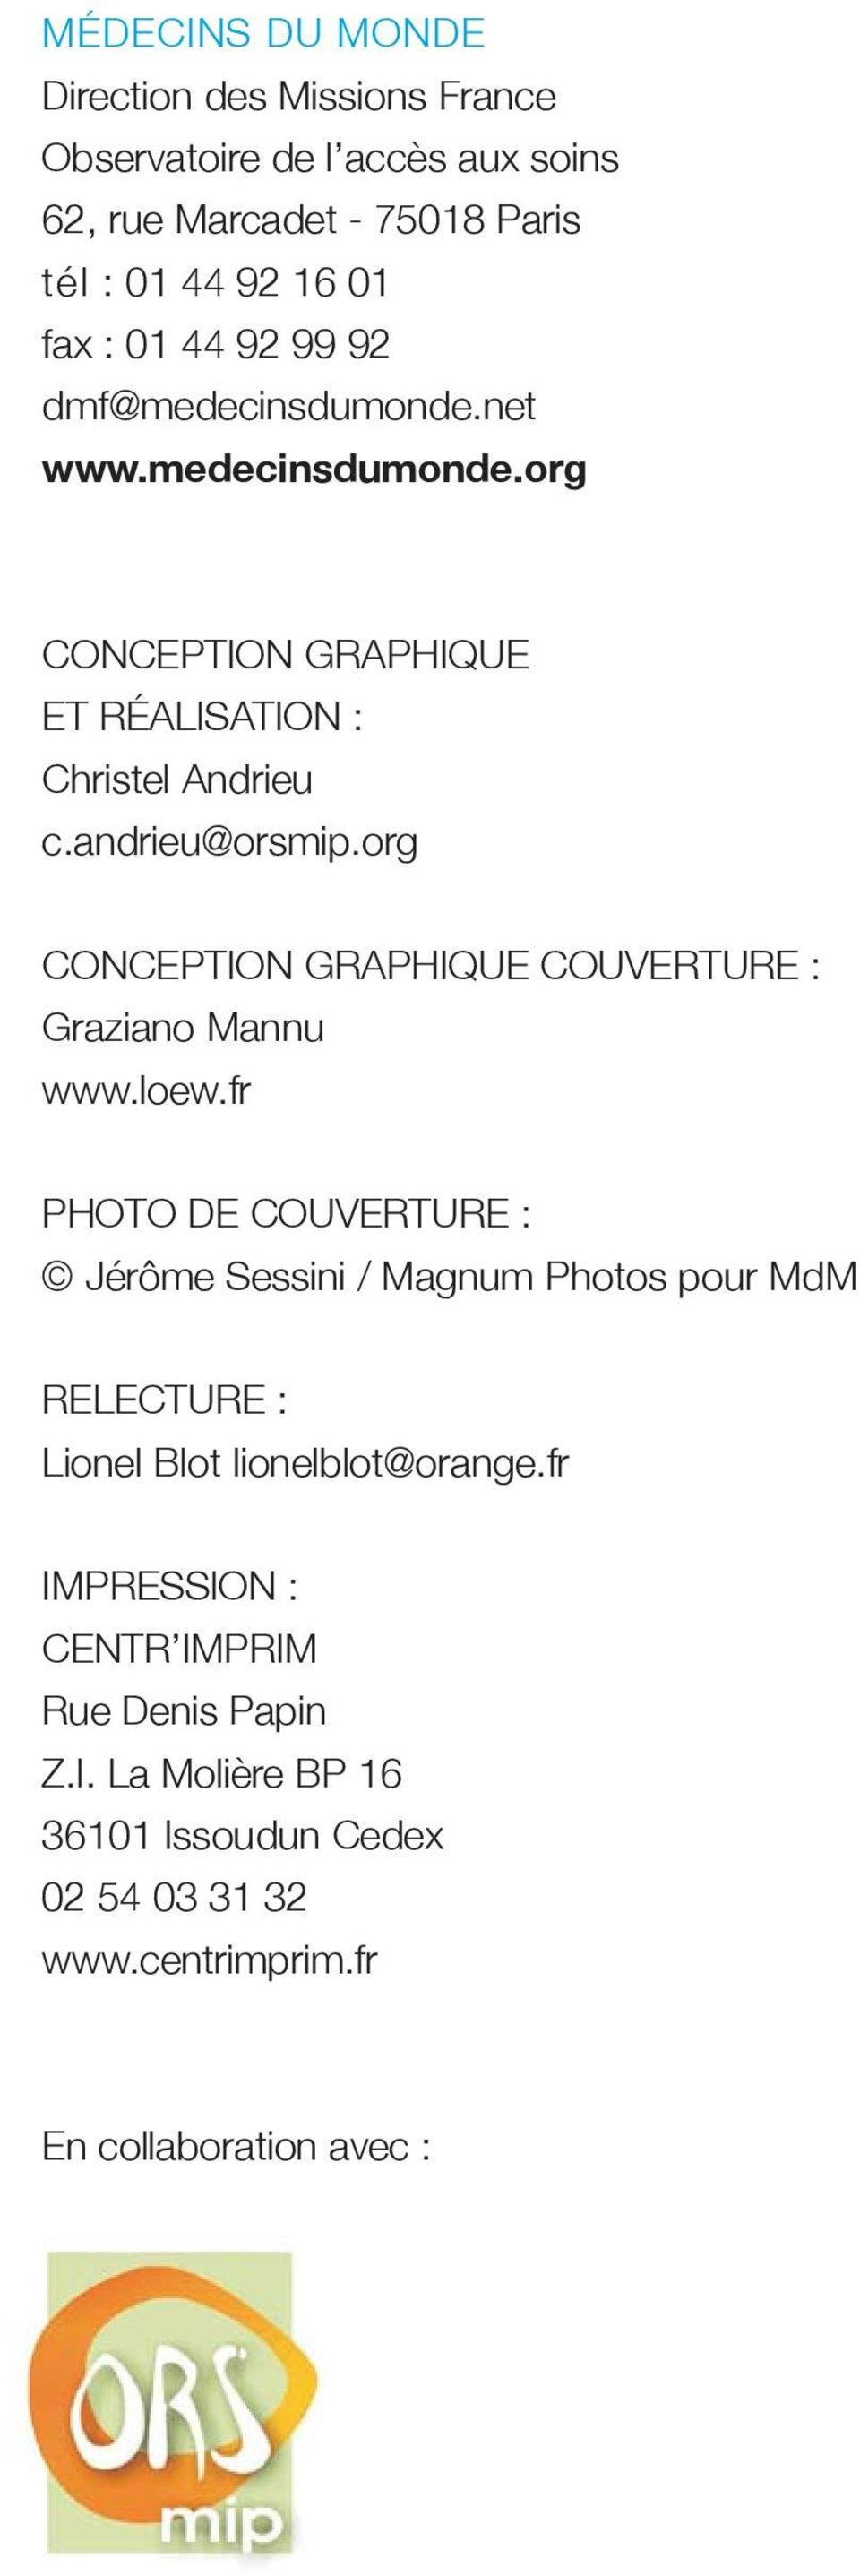 org CONCEPTION GRAPHIQUE COUVERTURE : Graziano Mannu www.loew.